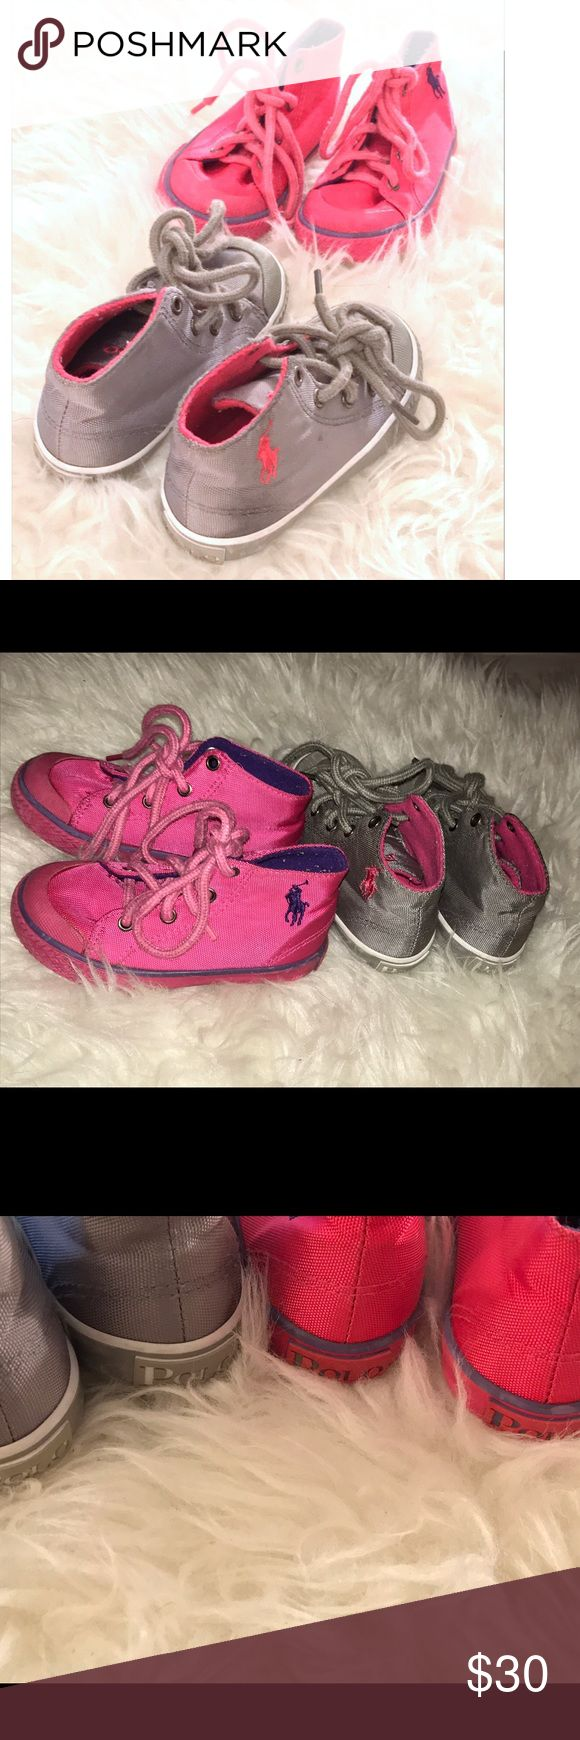 2 pairs of Size 6 Girl's High Top Sneakers 2 Sneakers in size 6 toddlers. One gray, pink and white. The other is pink and purple. Excellent condition. Bundle and save! Shoes Sneakers